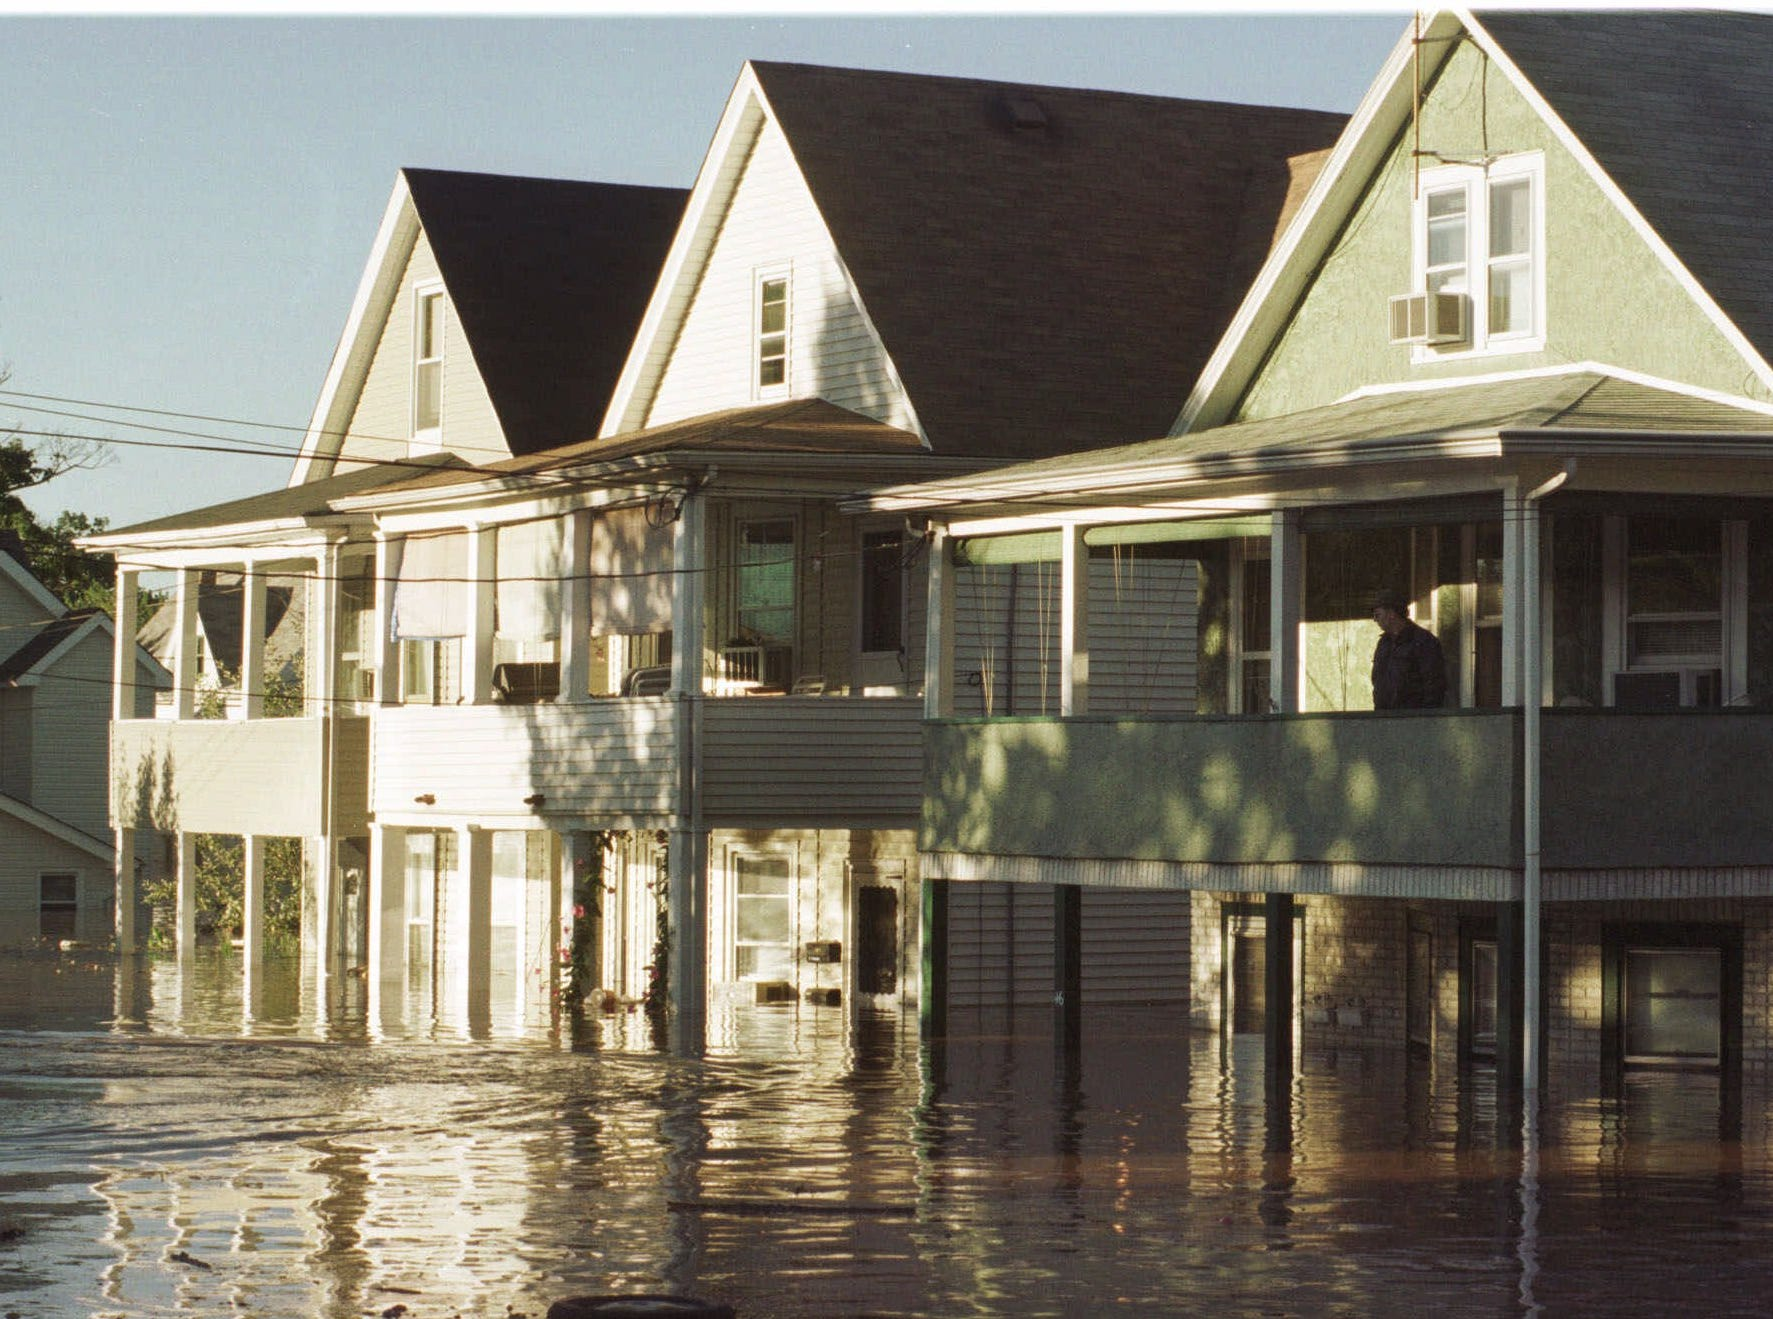 Sept. 17, 1999: An unidentified man surveys his flooded neighborhood in Bound Brook from his second floor porch. Rain fall from Hurricane Floyd flooded many areas near streams and rivers throughout the state.